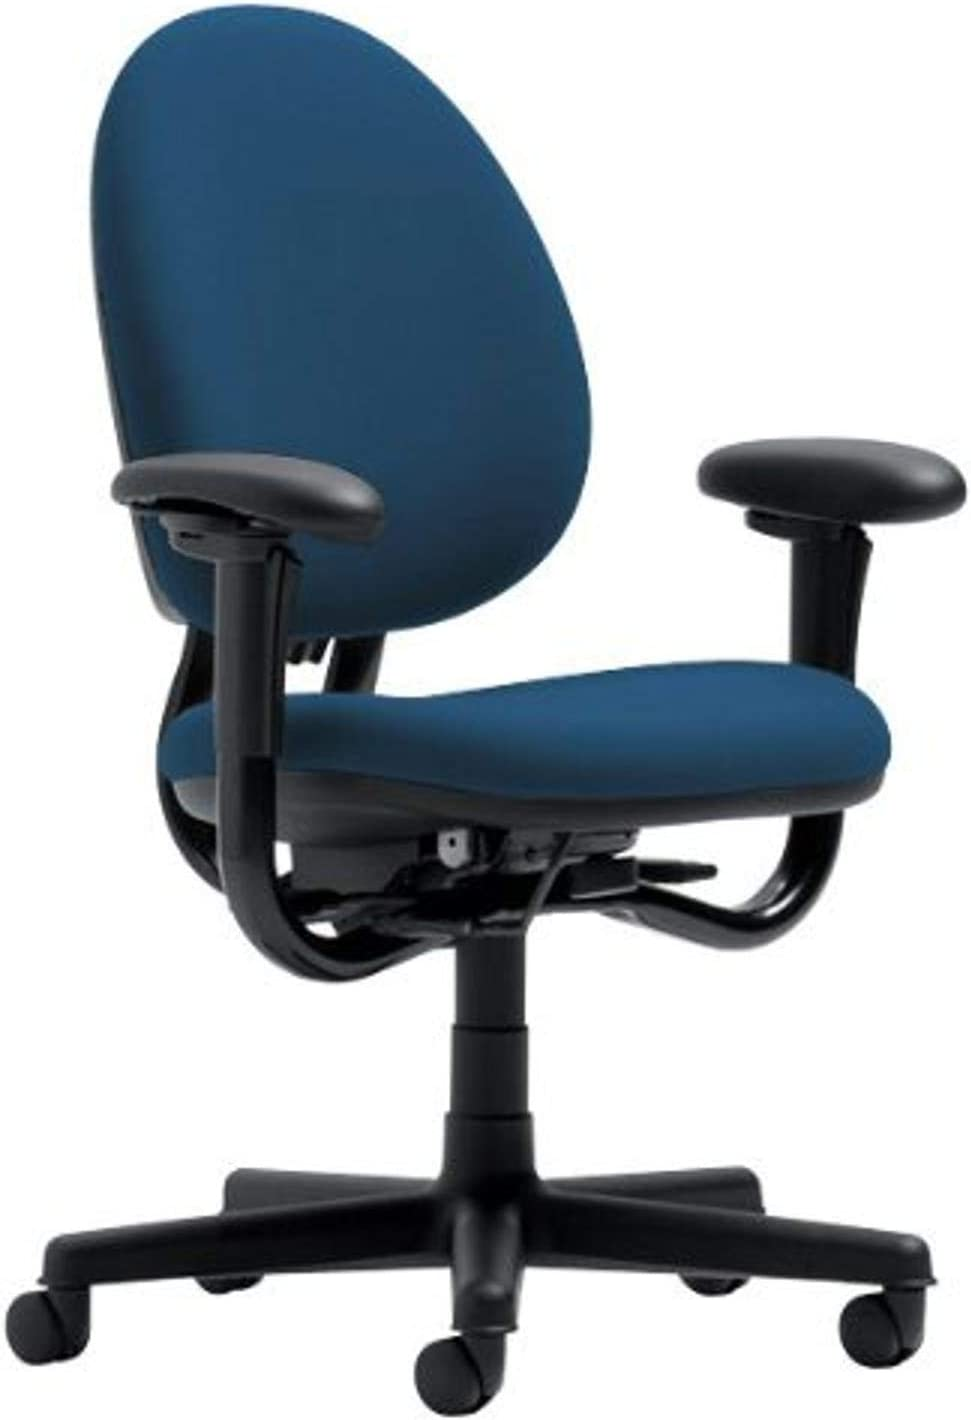 Steelcase Criterion Chair, Blue Fabric